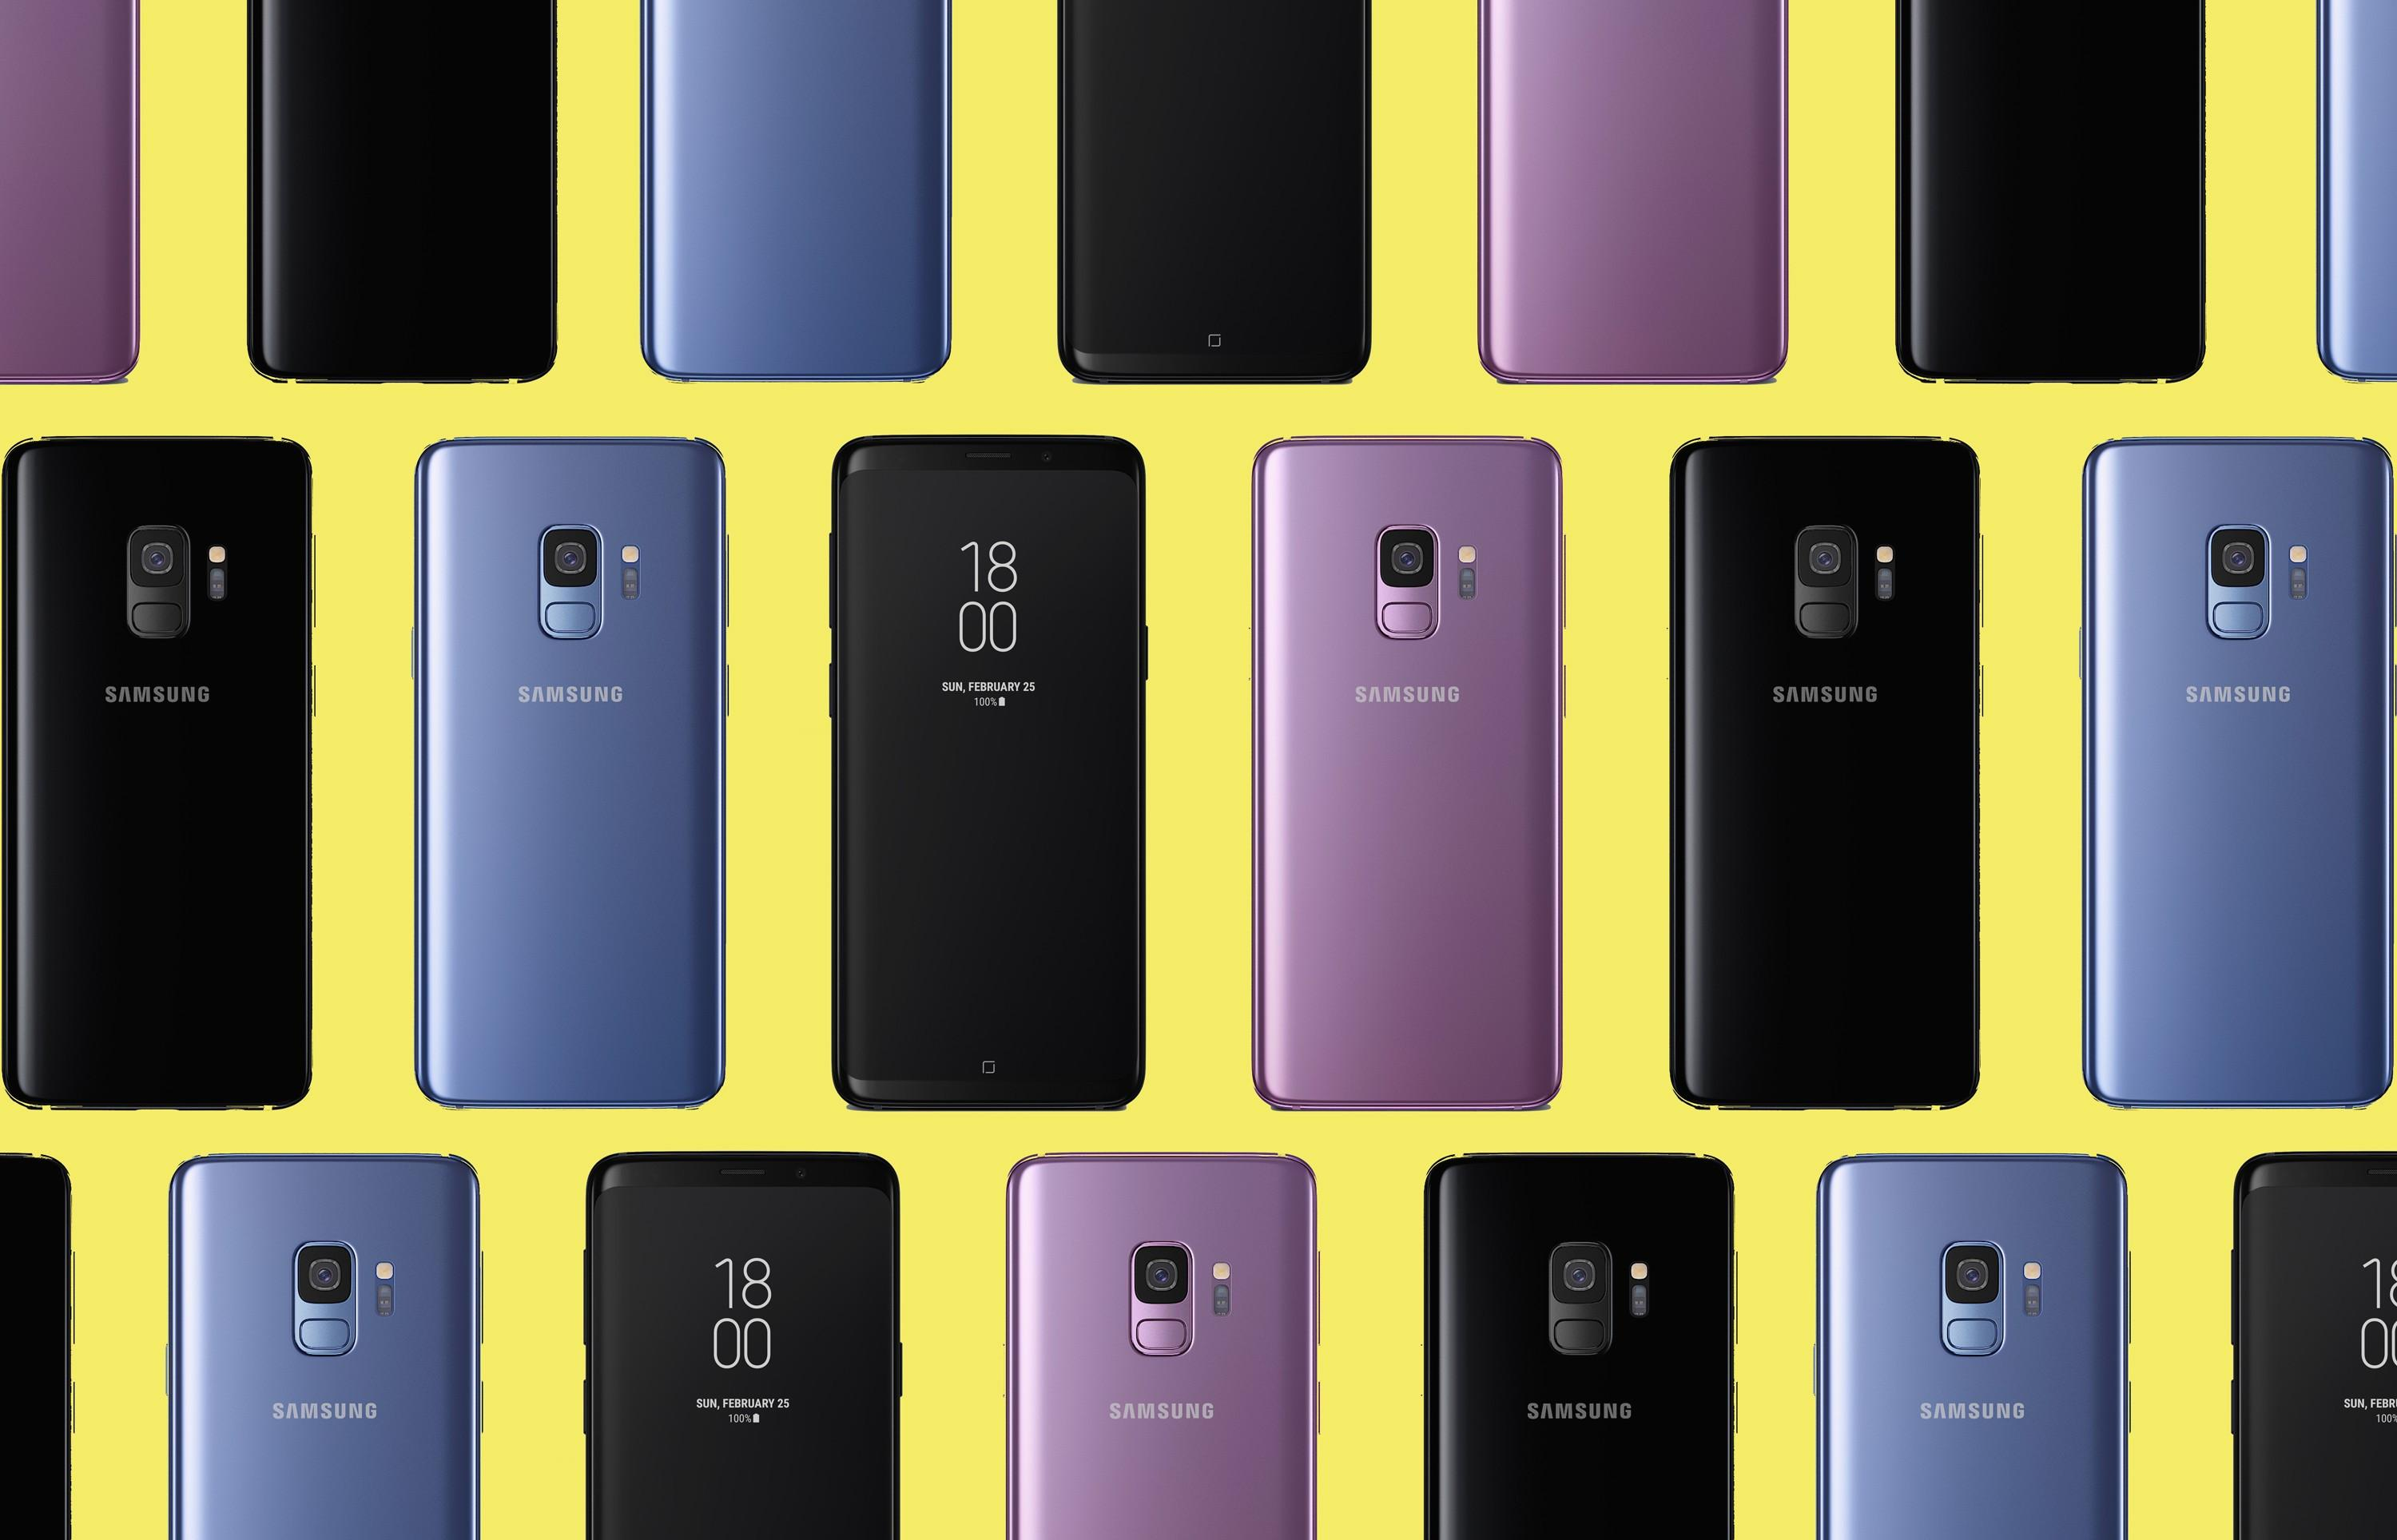 S7 Edge Wallpaper Hd - S9 Plus Warna , HD Wallpaper & Backgrounds